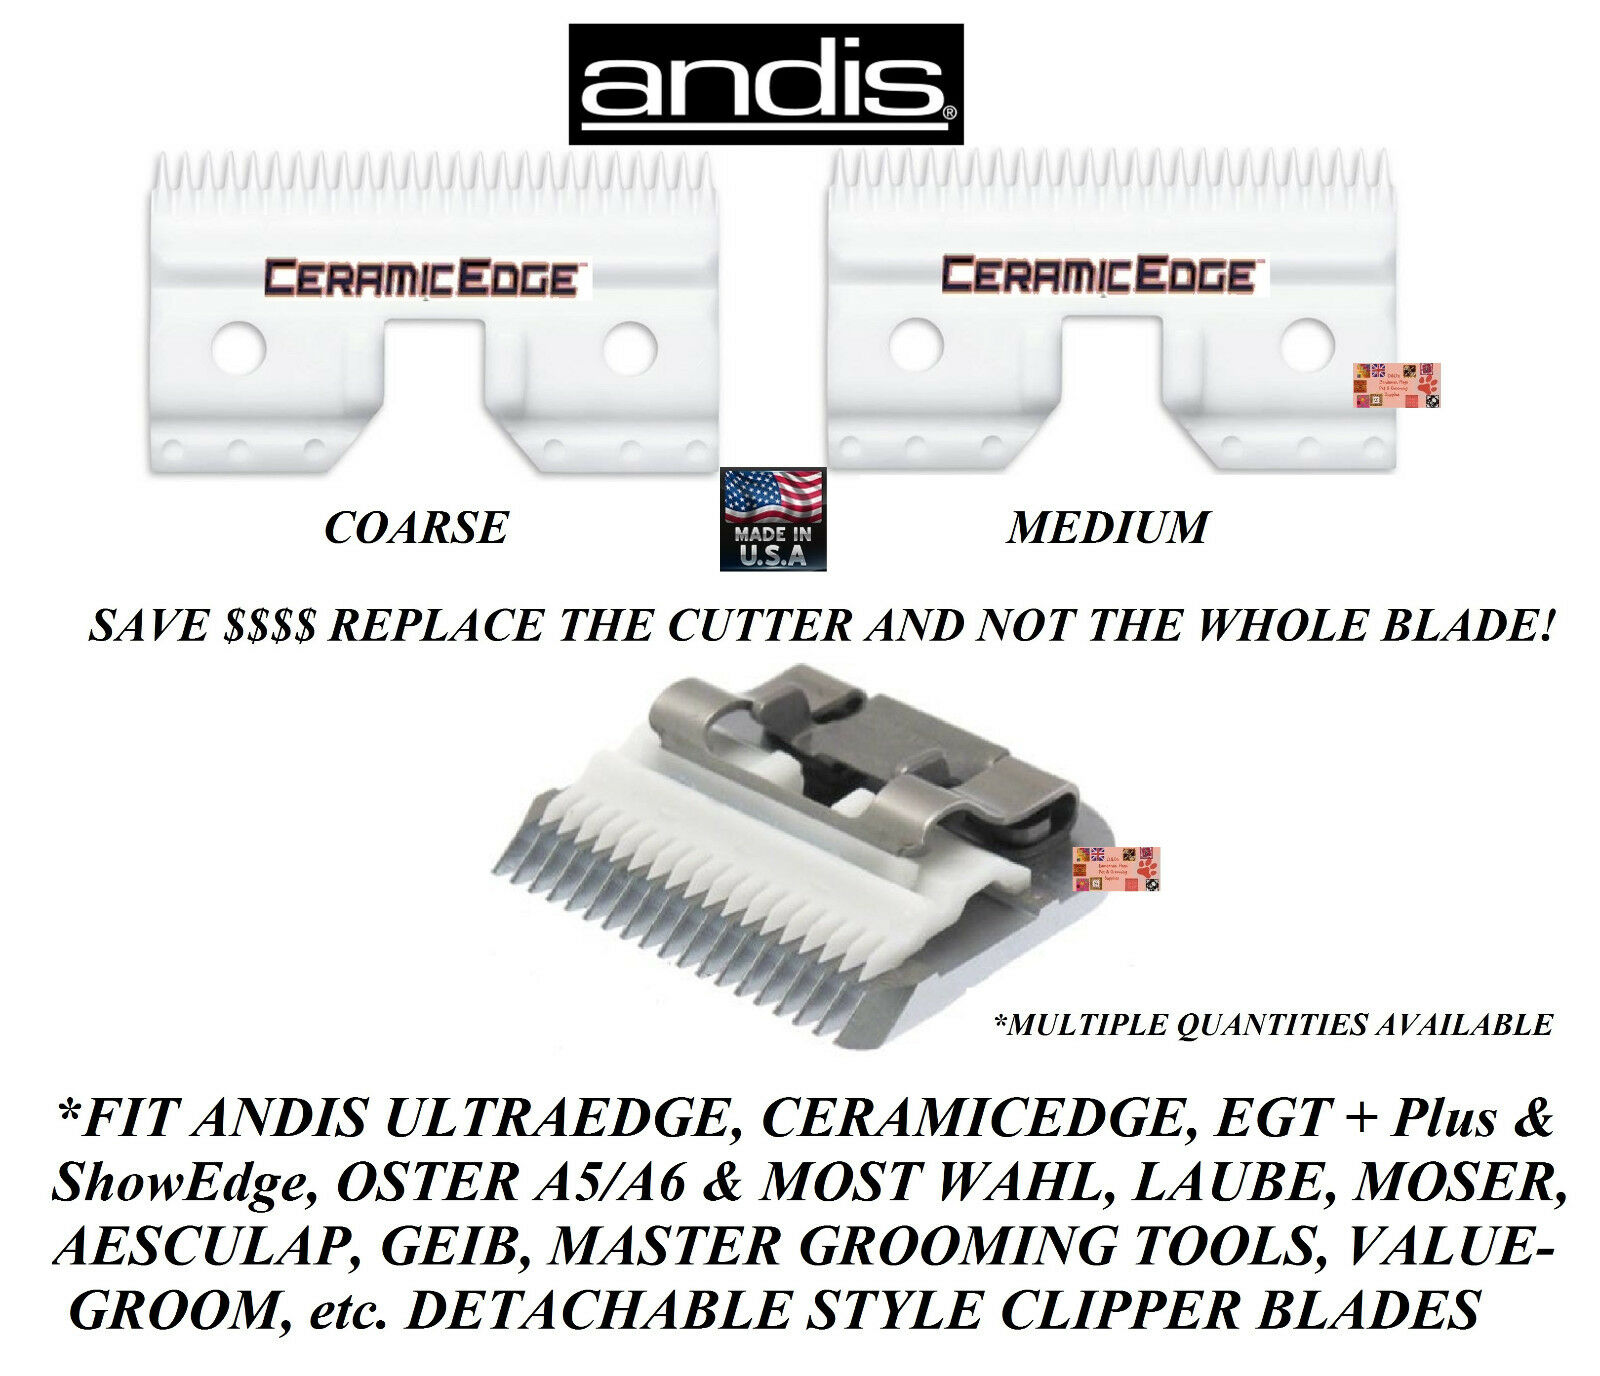 Andis CeramicEdge Detachable Blade CERAMIC CUTTERFit Oster A5 A6 76 97 Clippers